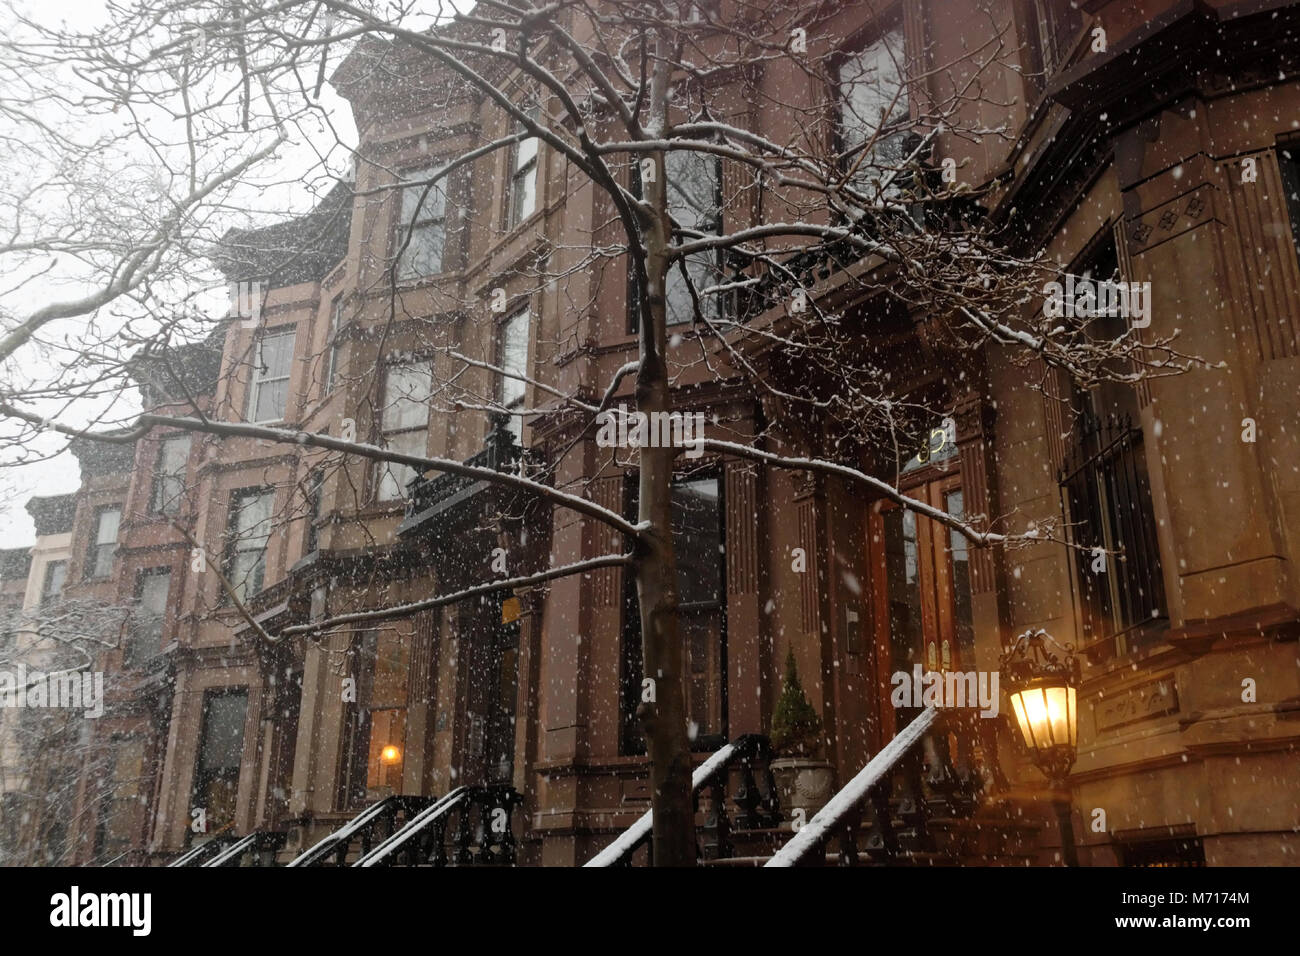 Brooklyn, USA. 7th March, 2018. Brownstones and trees in Brooklyn during the Nor'easter of March 7th, 2018. - Stock Image